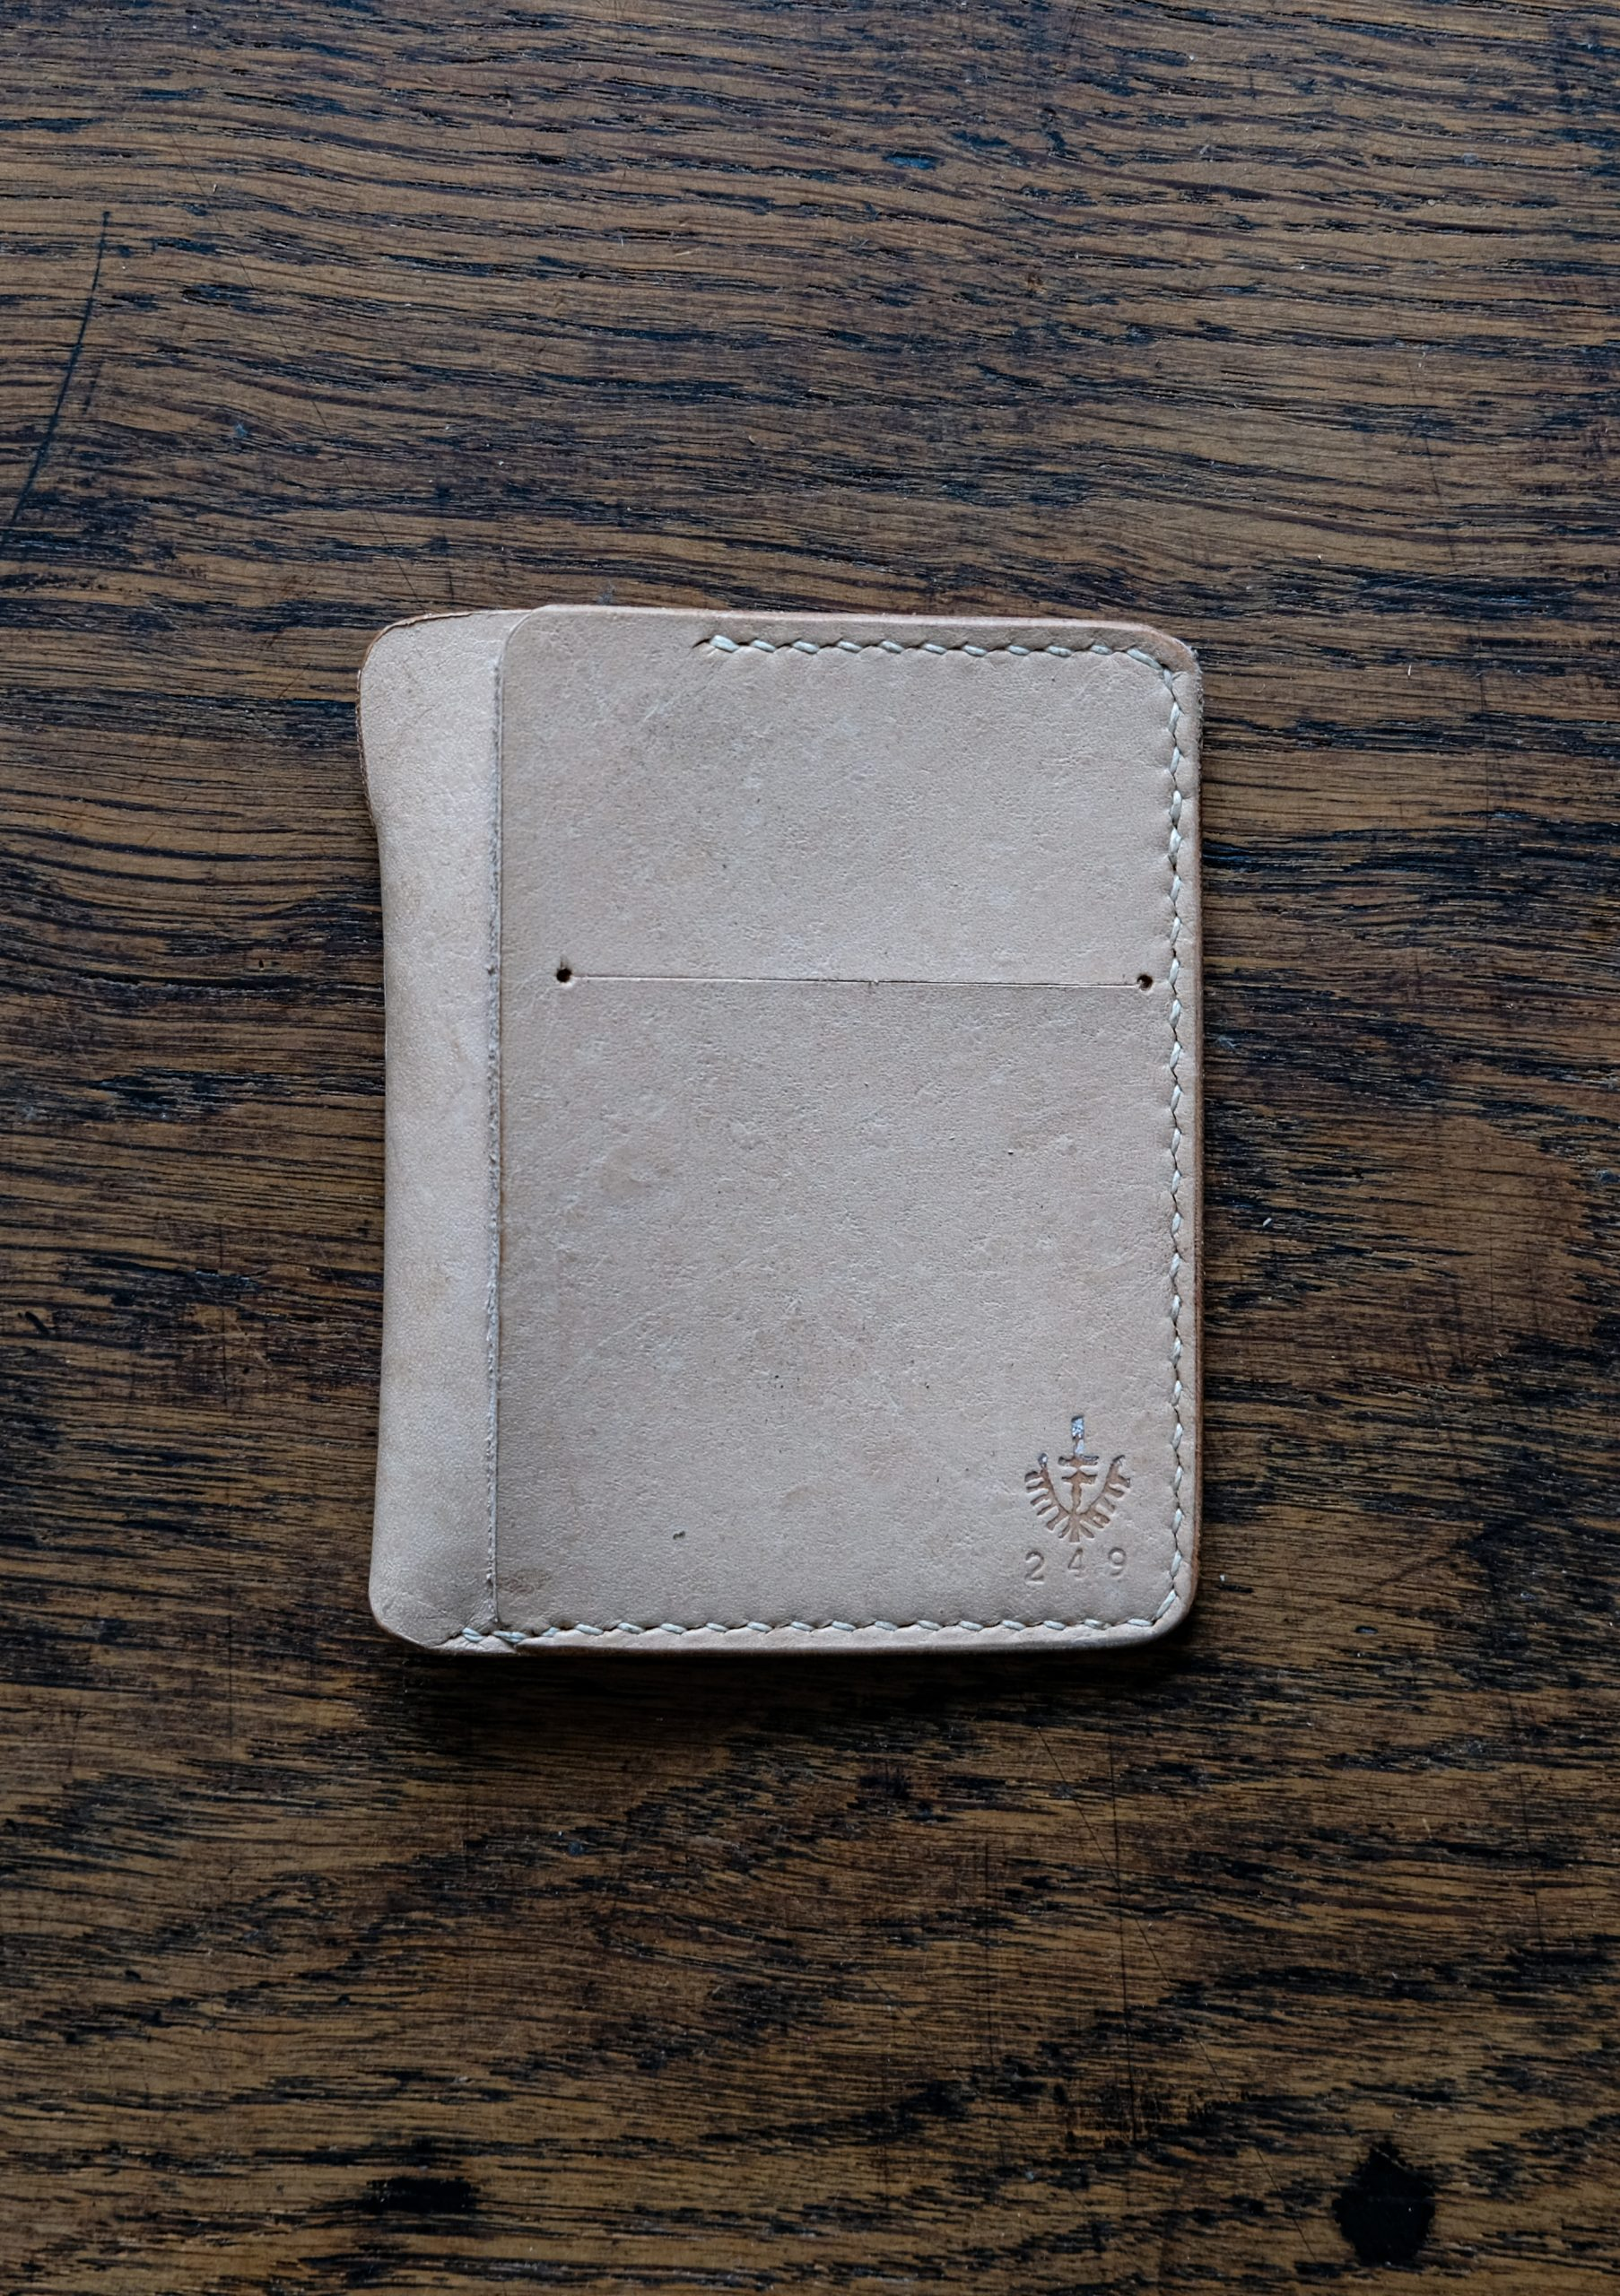 lerif designs Vale leather wallet in natural on wood background